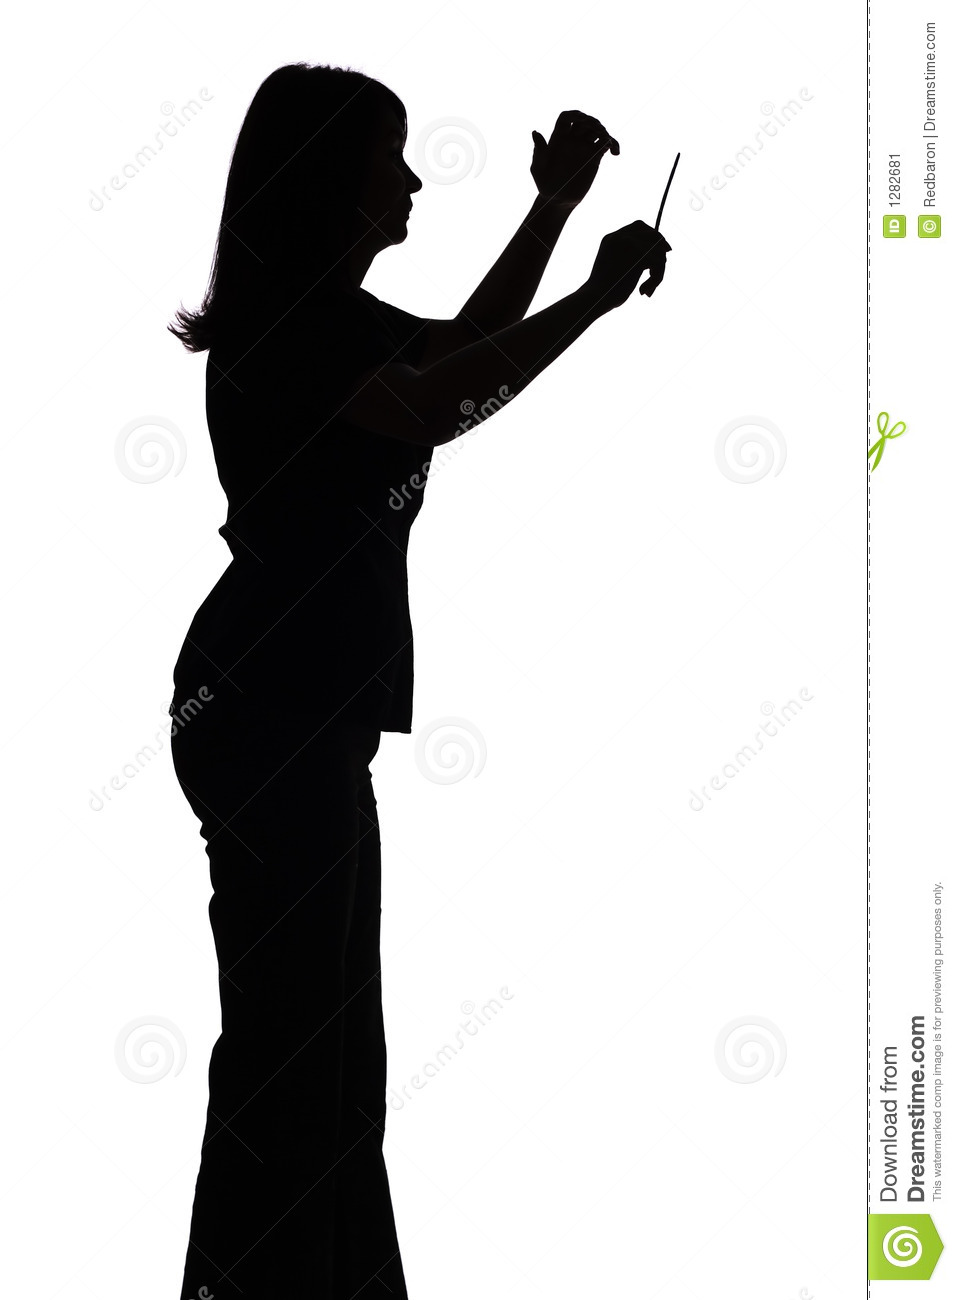 Silhouette Of Female Conductor Stock Image   Image  1282681